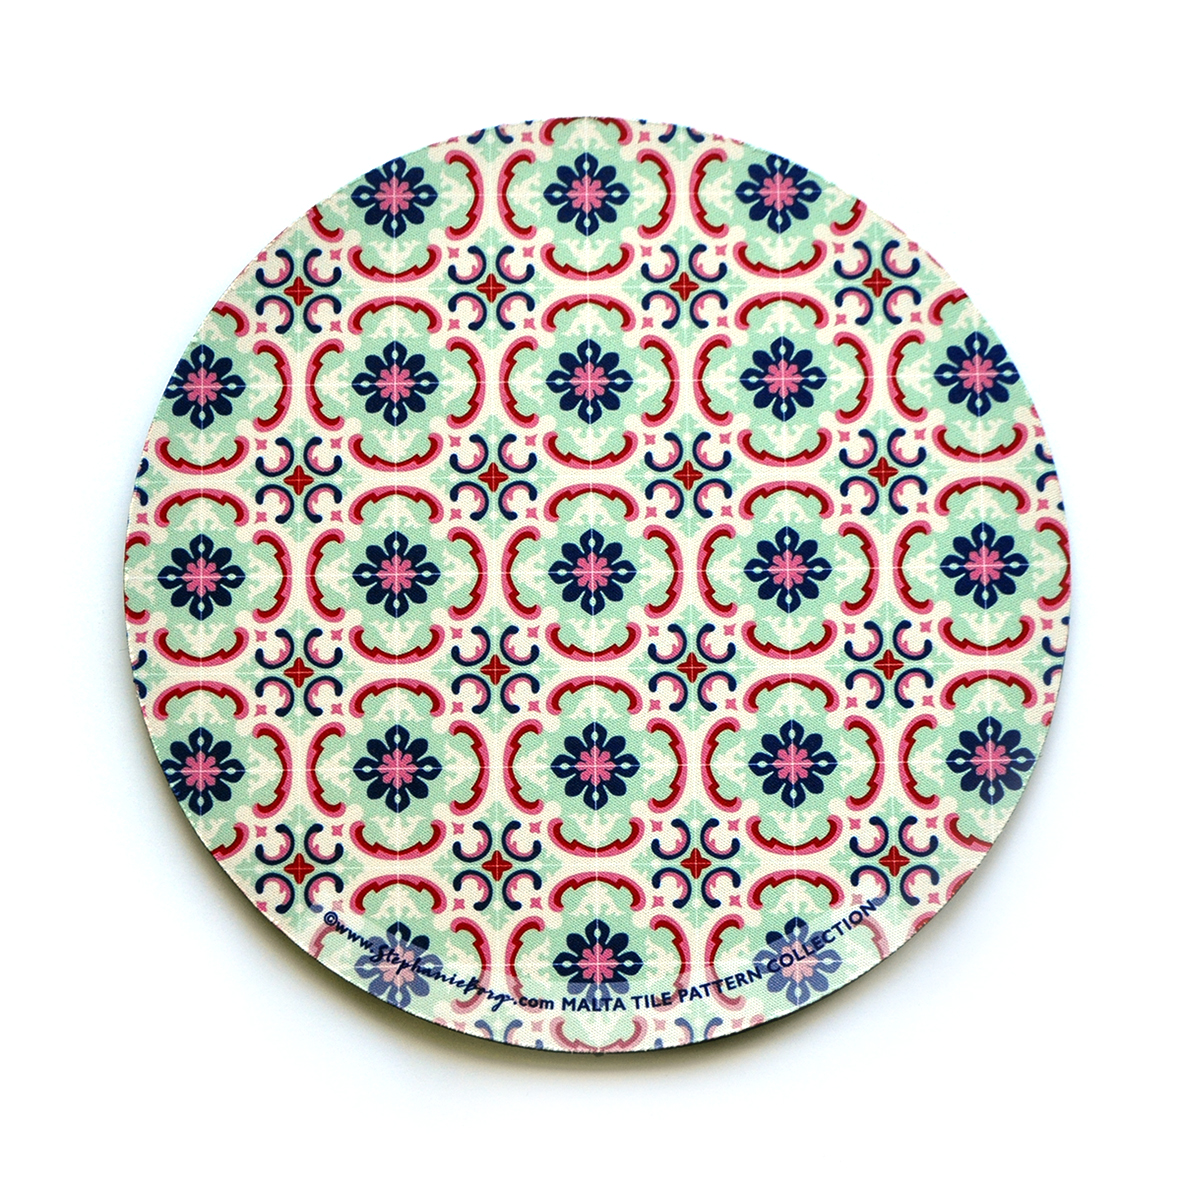 Mousepad with Maltese Tile Patterns, pattern no.1